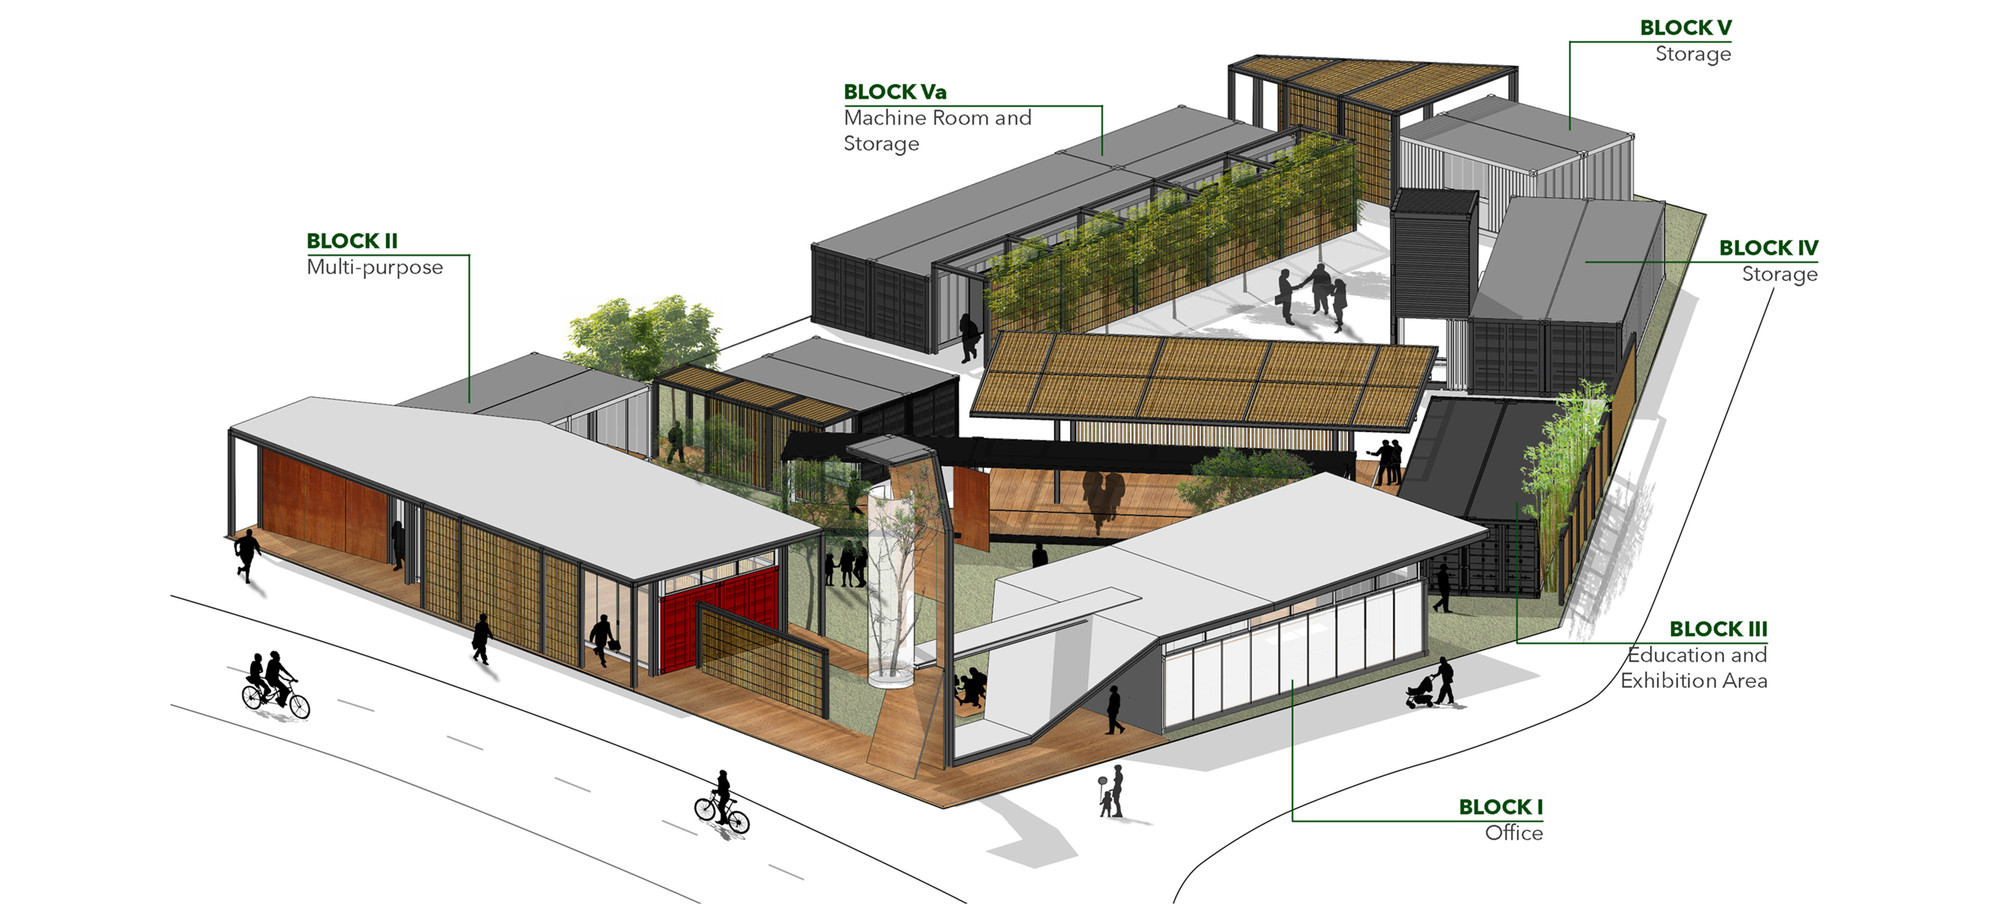 Gallery of Community Green Station Hong Kong Architectural